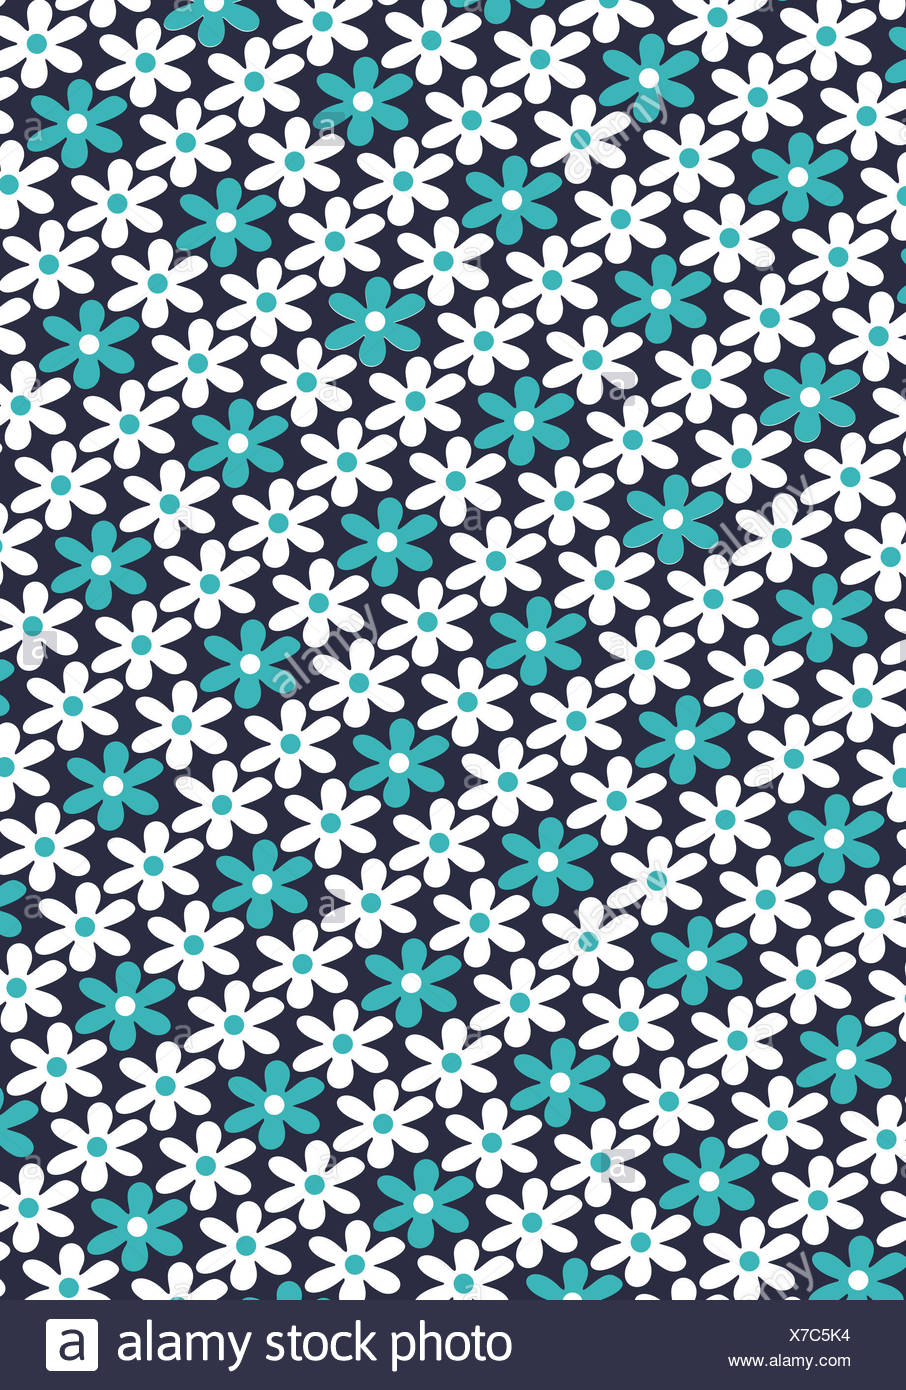 abstract flower pattern - Stock Image